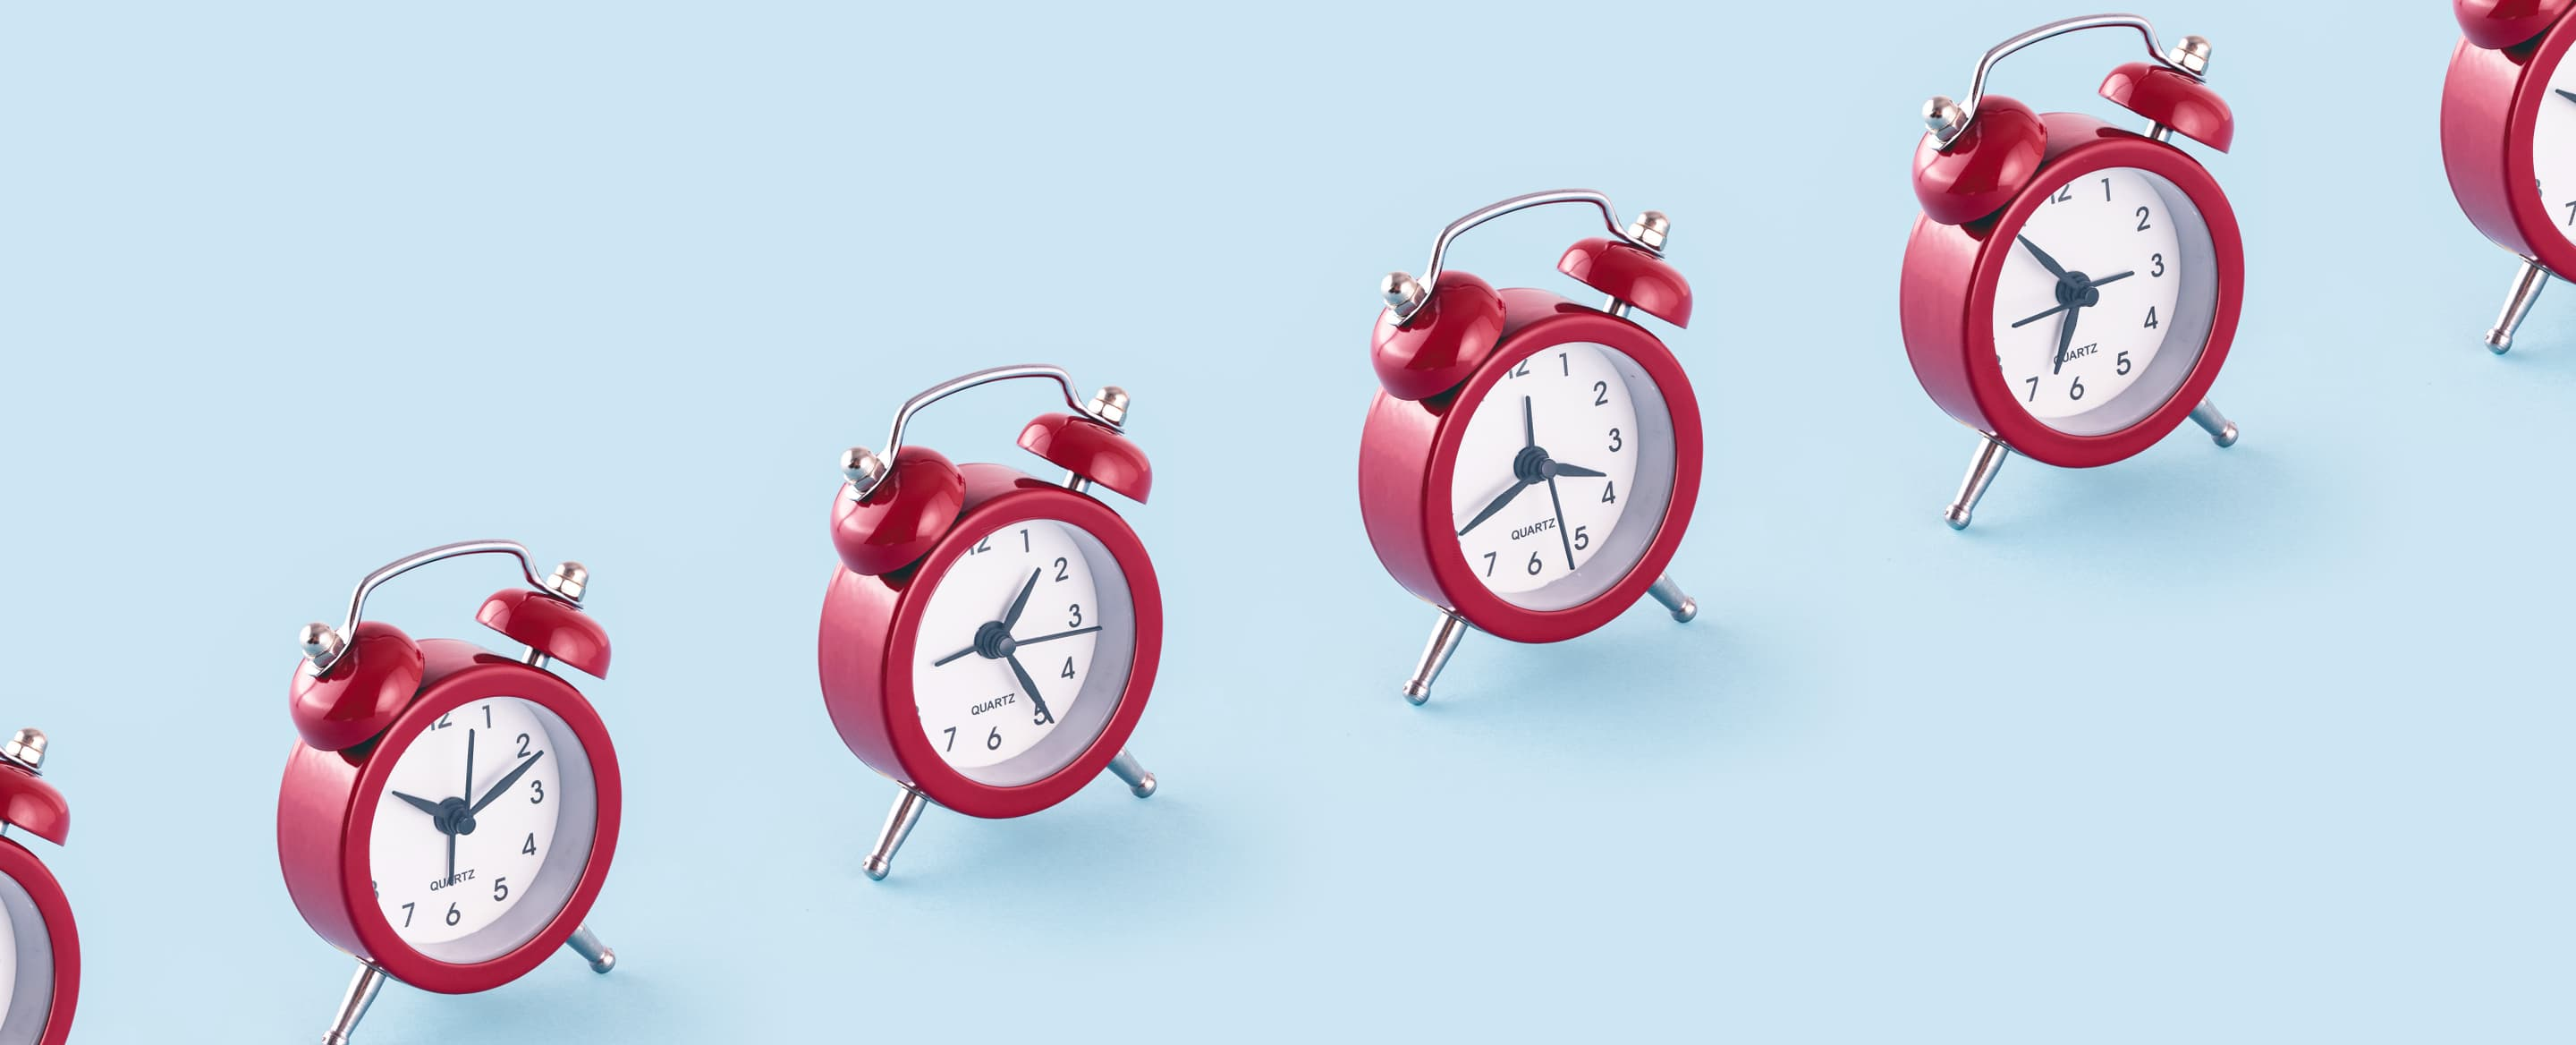 Perfect your upsell timing